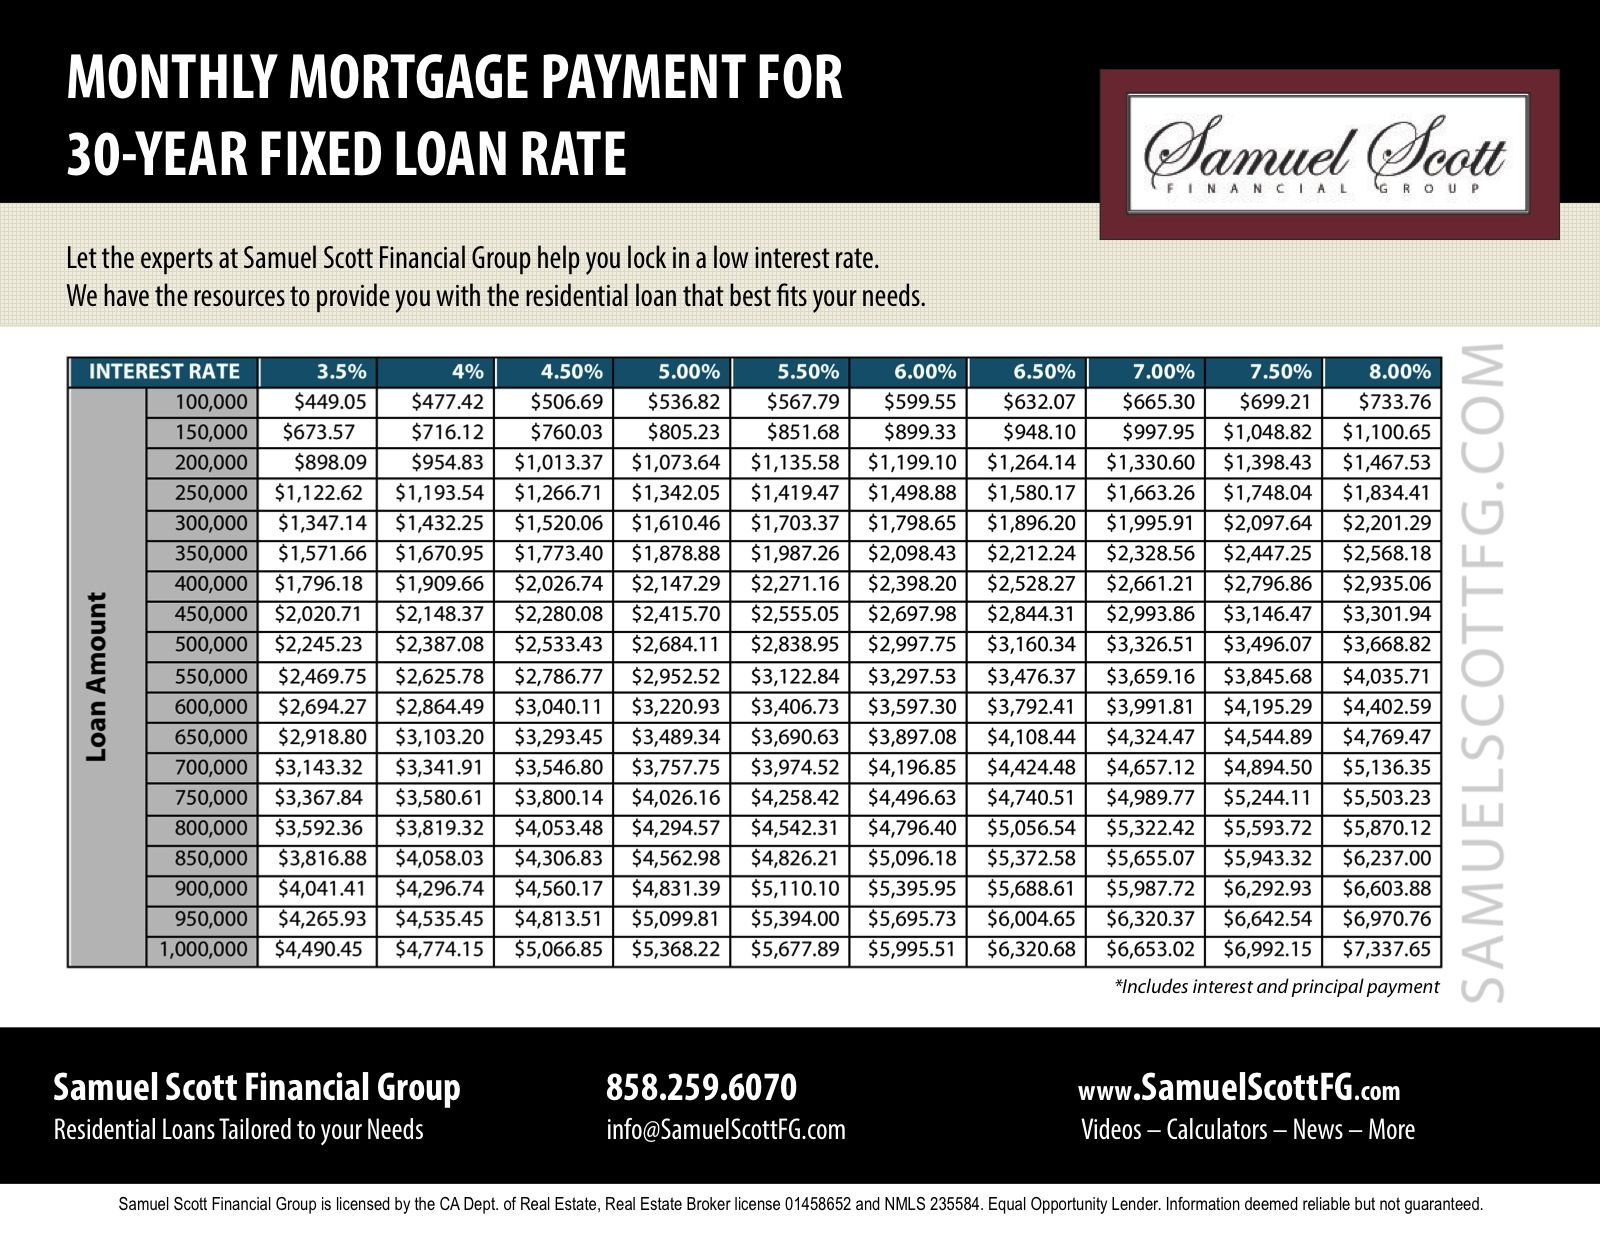 This Infographic Shows The Monthly Mortgage Payment For A 30 Year